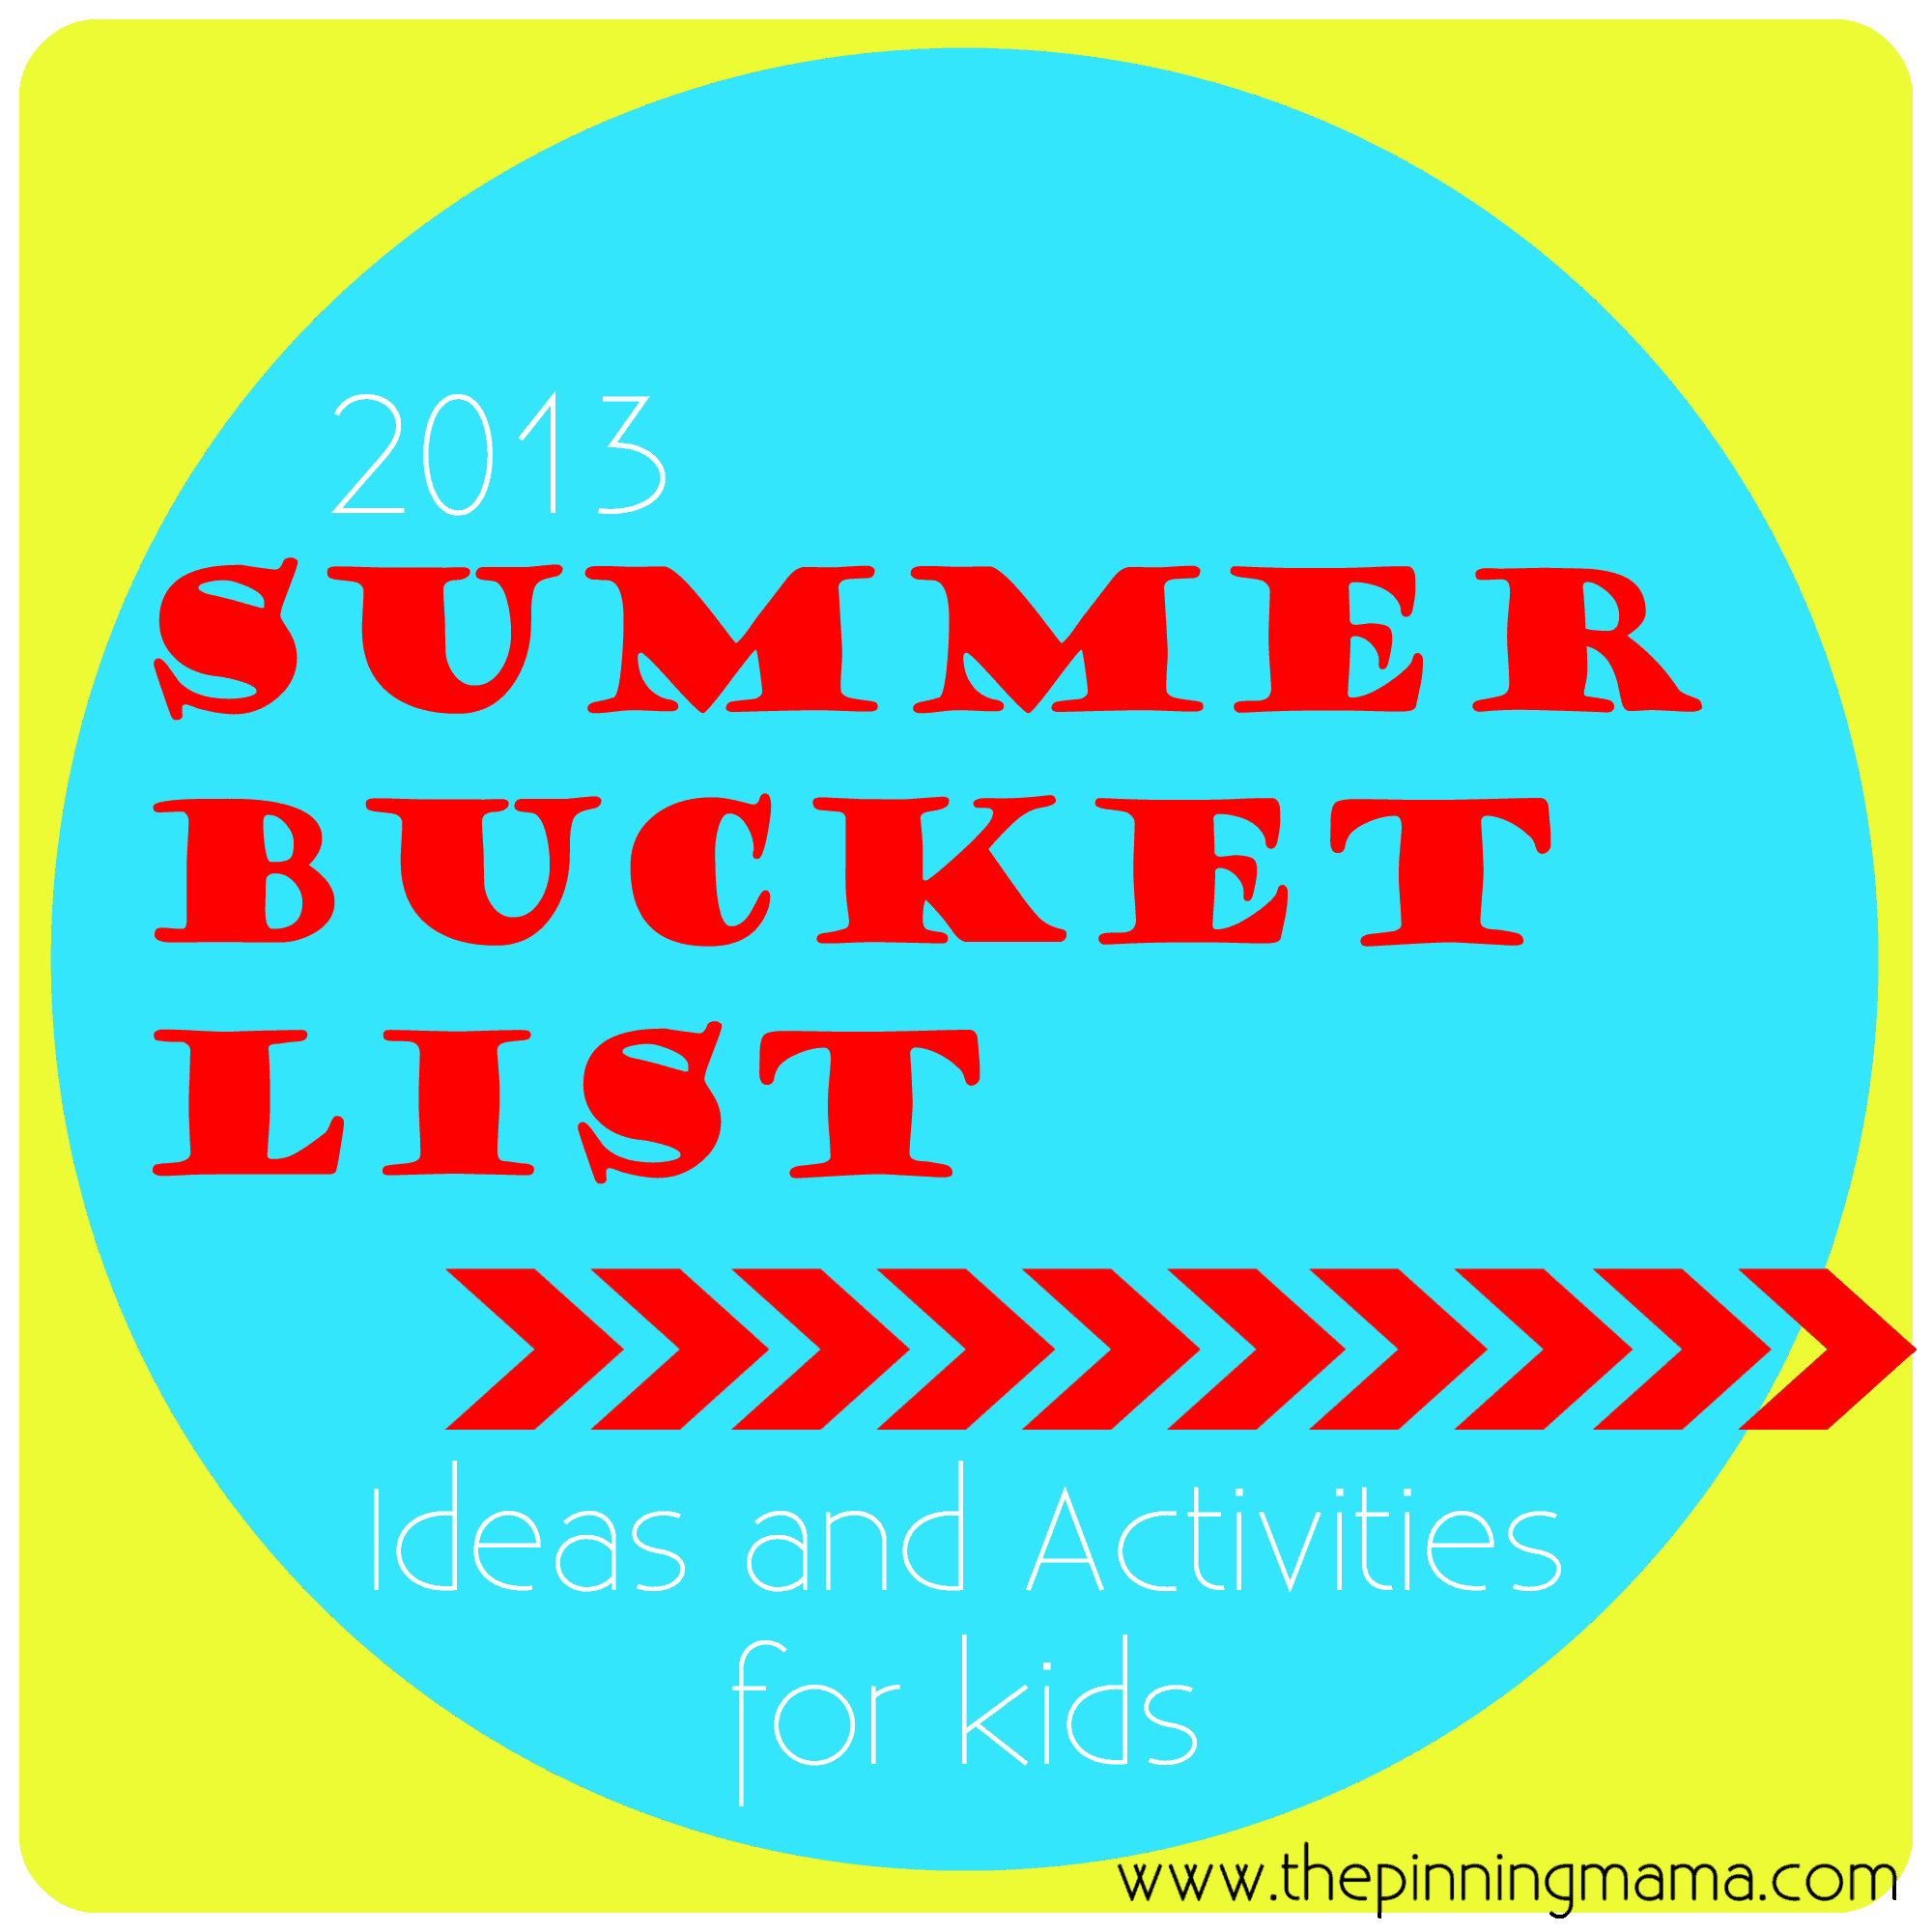 Summer Bucket List} 50 Summer Ideas and Activities for Kids with ...